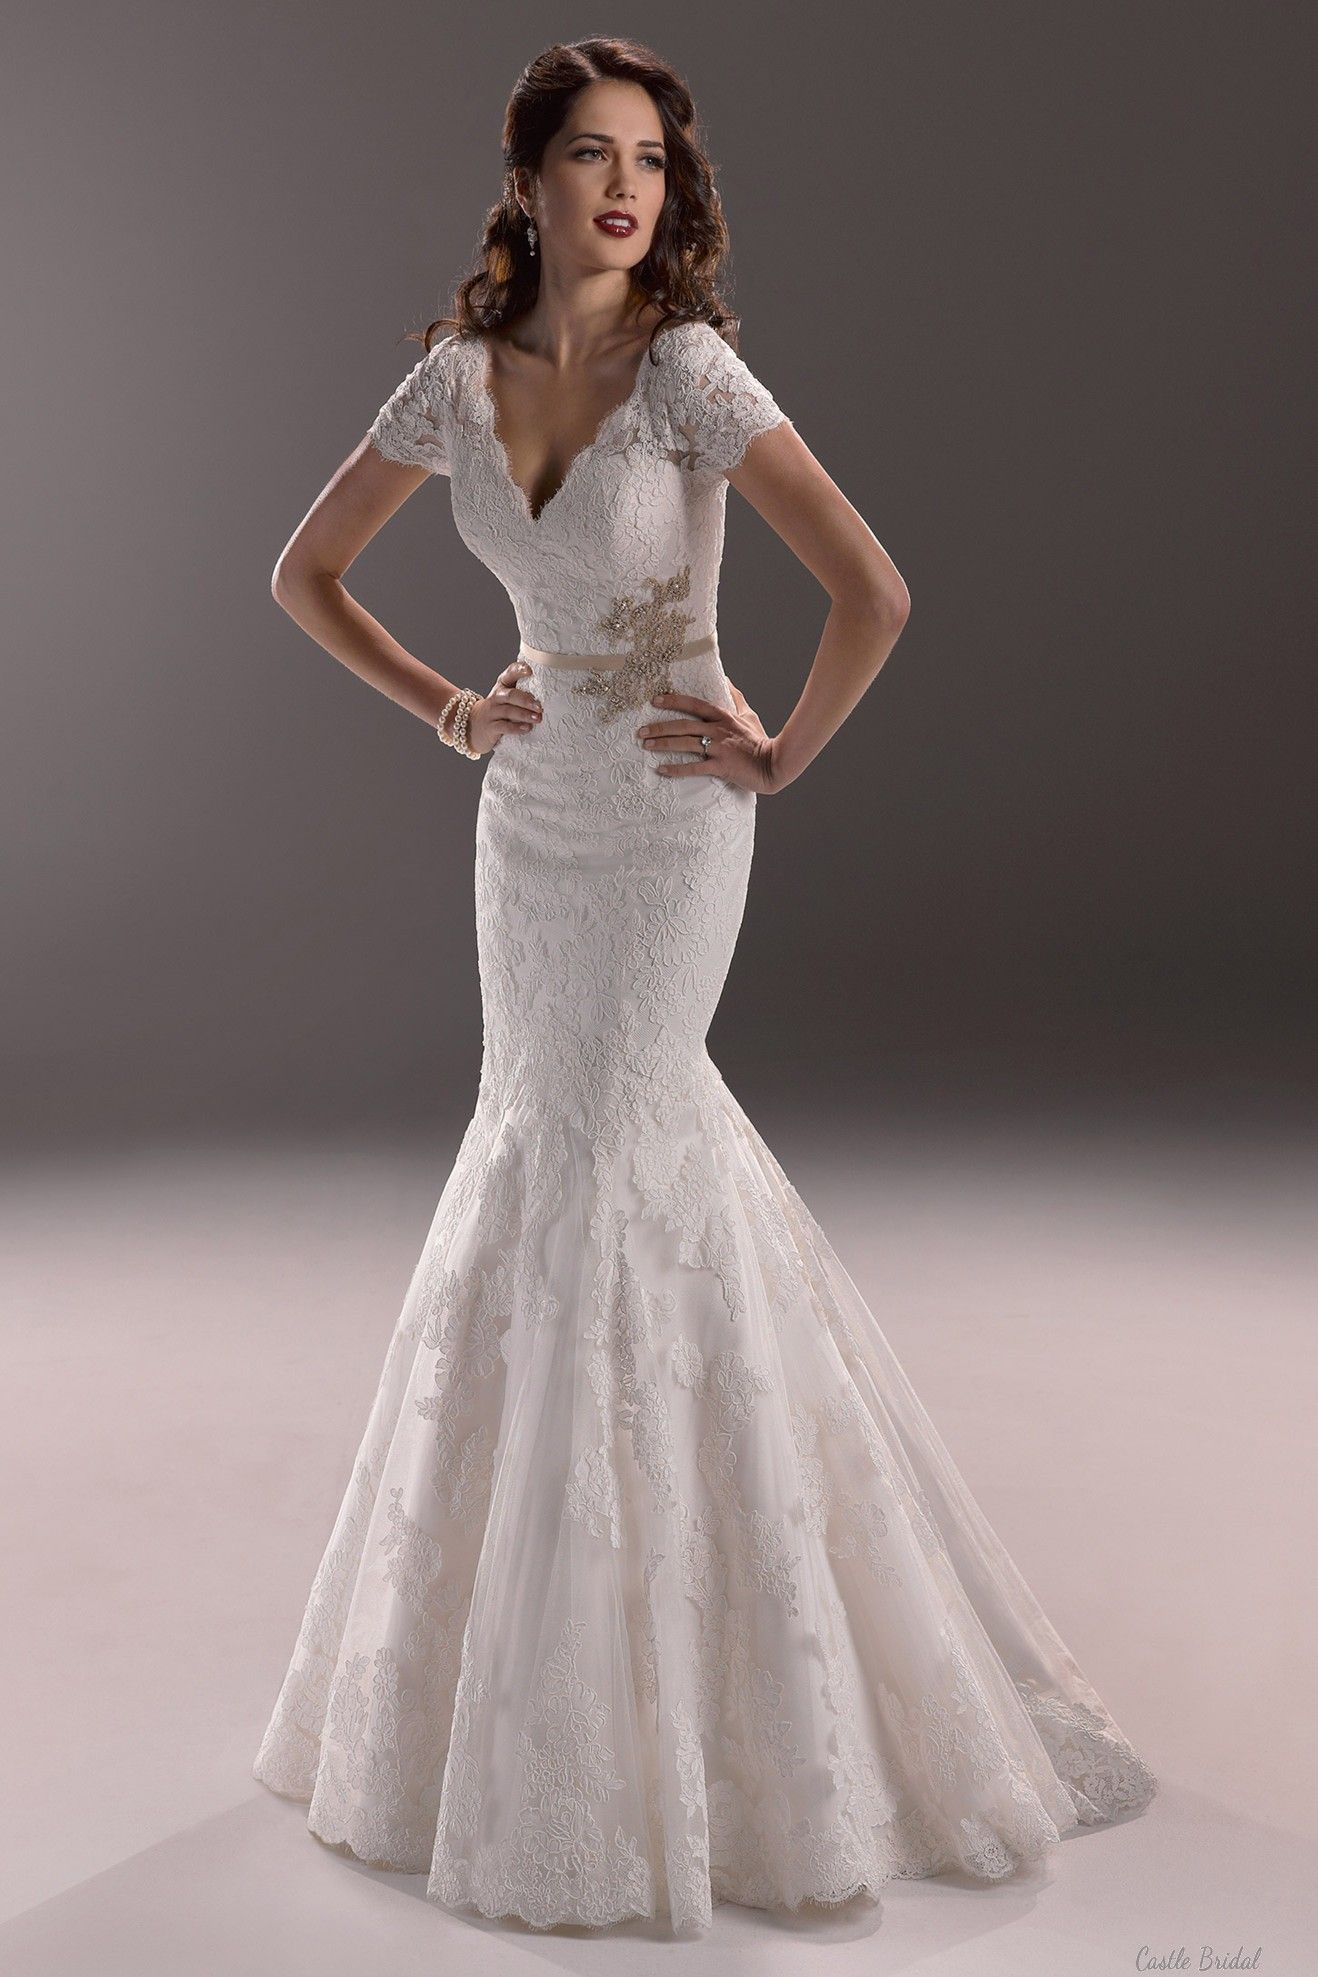 Wedding gowns with sleeves from spring get latest fashion